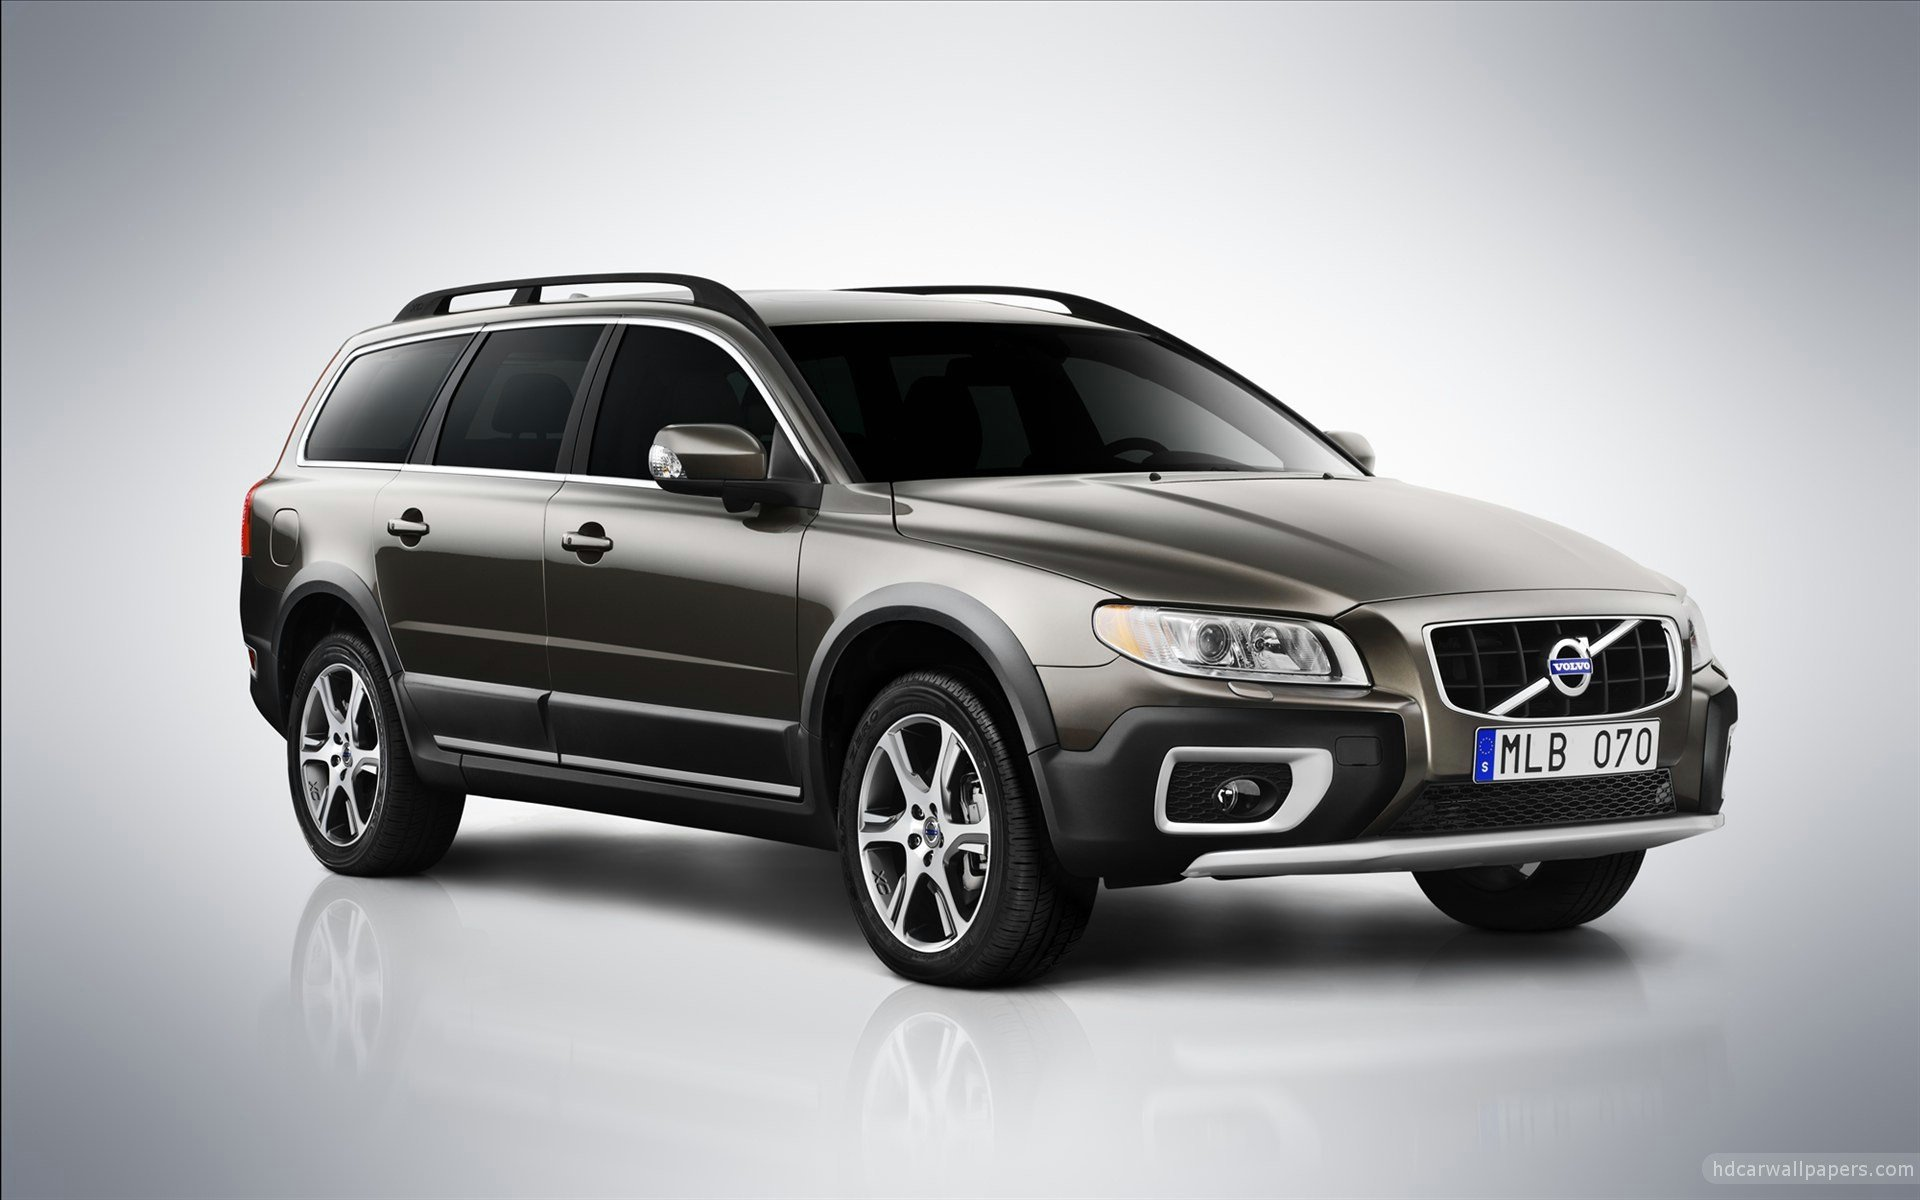 New 2012 Volvo Xc70 Wallpaper Hd Car Wallpapers Id 2047 On This Month